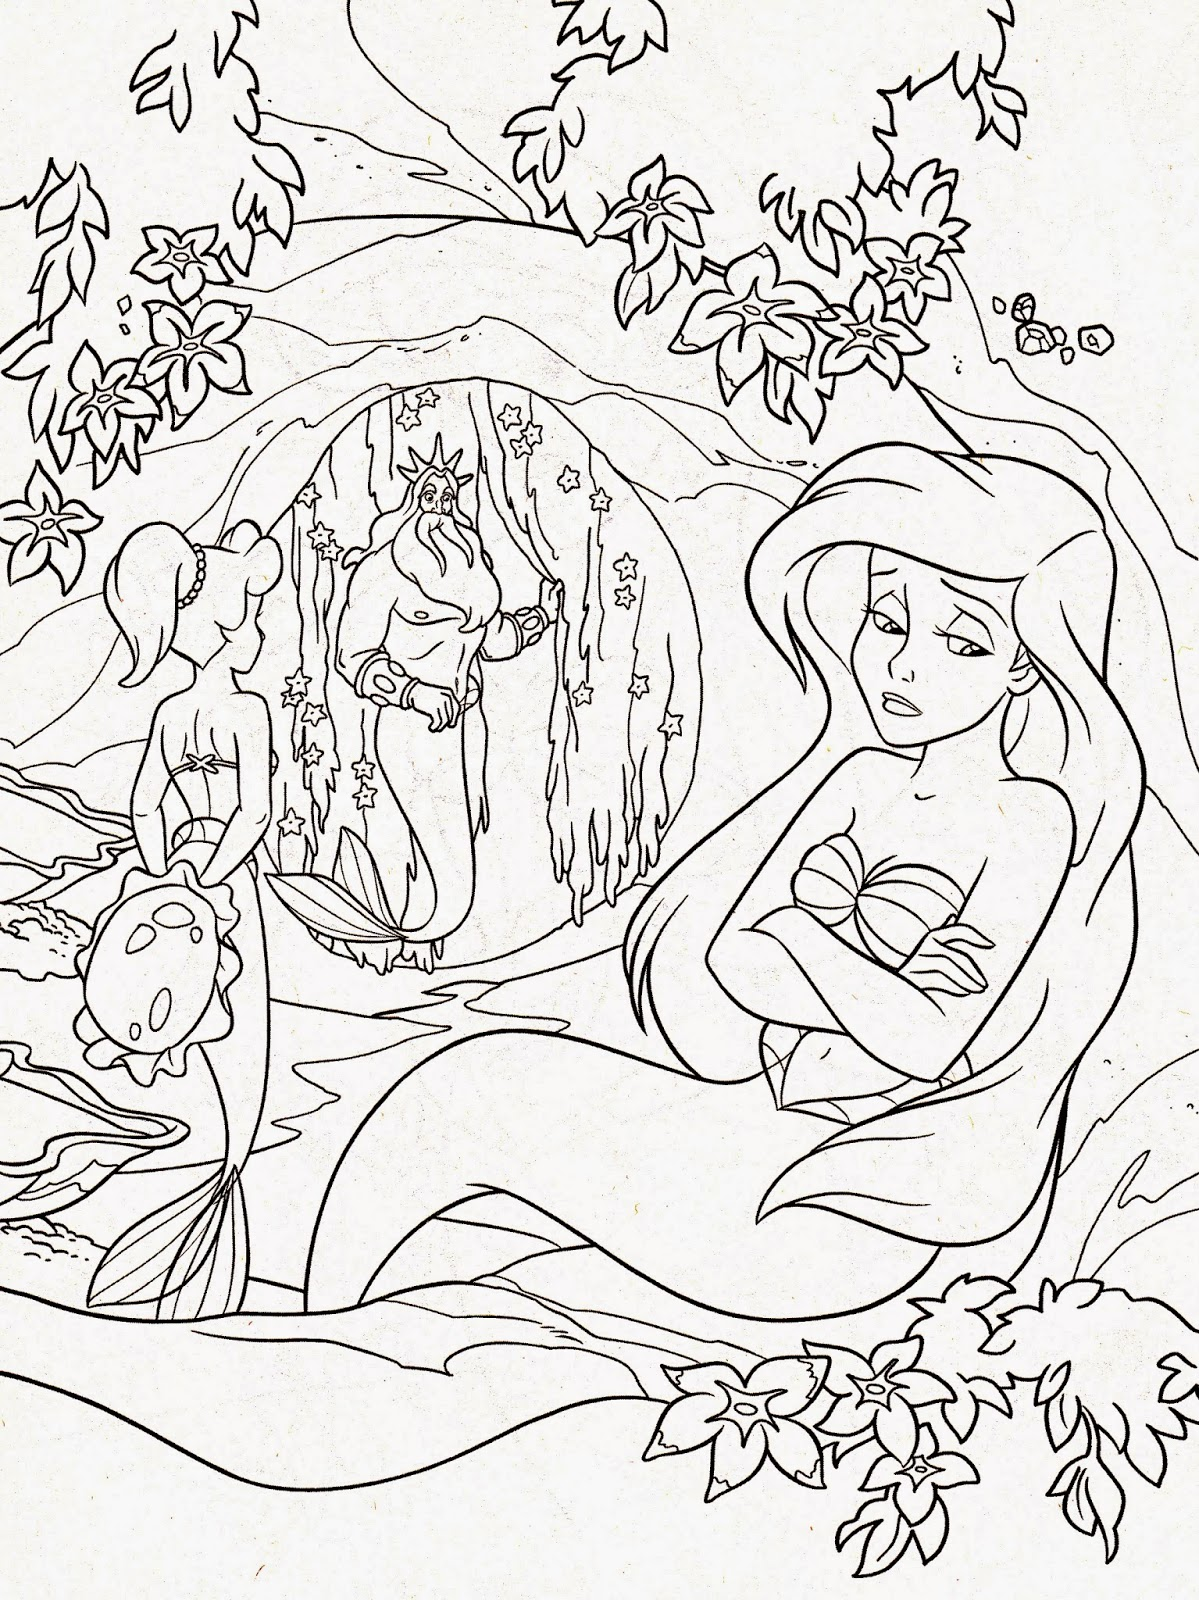 Coloring Pages: Disney Coloring Pages Free and Printable